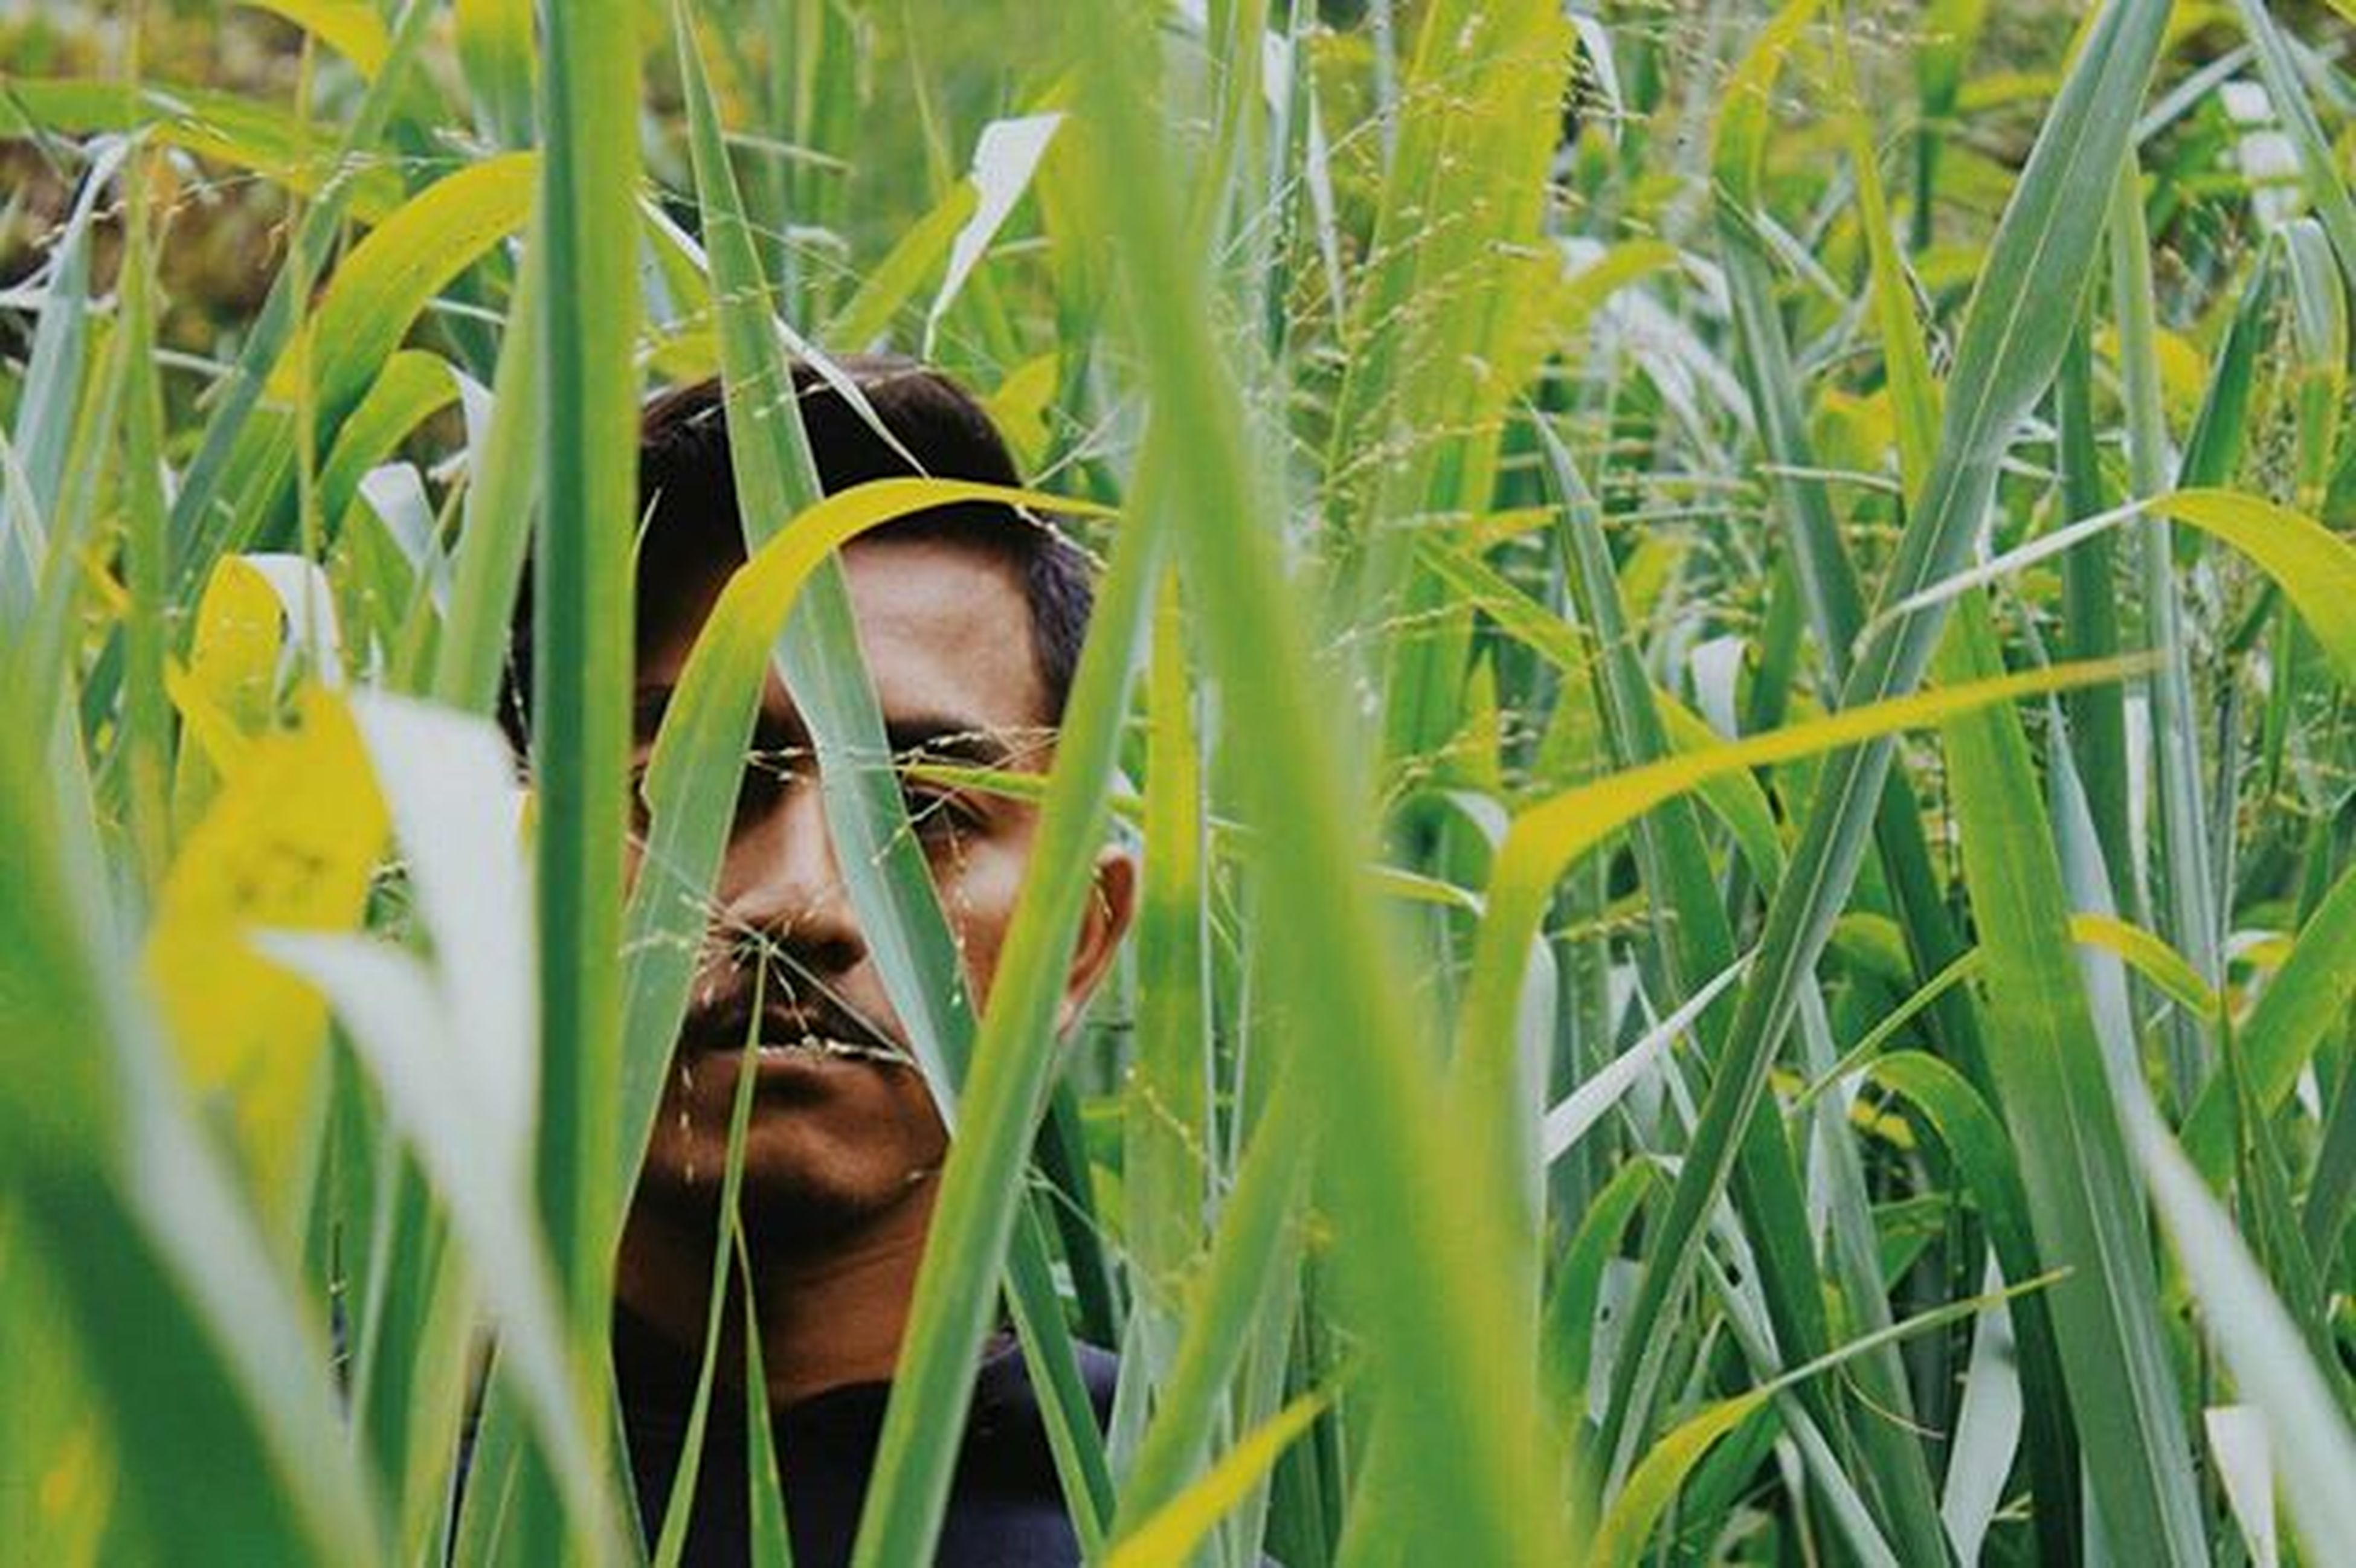 grass, growth, plant, field, green color, close-up, nature, focus on foreground, grassy, leaf, outdoors, selective focus, day, sunlight, beauty in nature, green, headshot, freshness